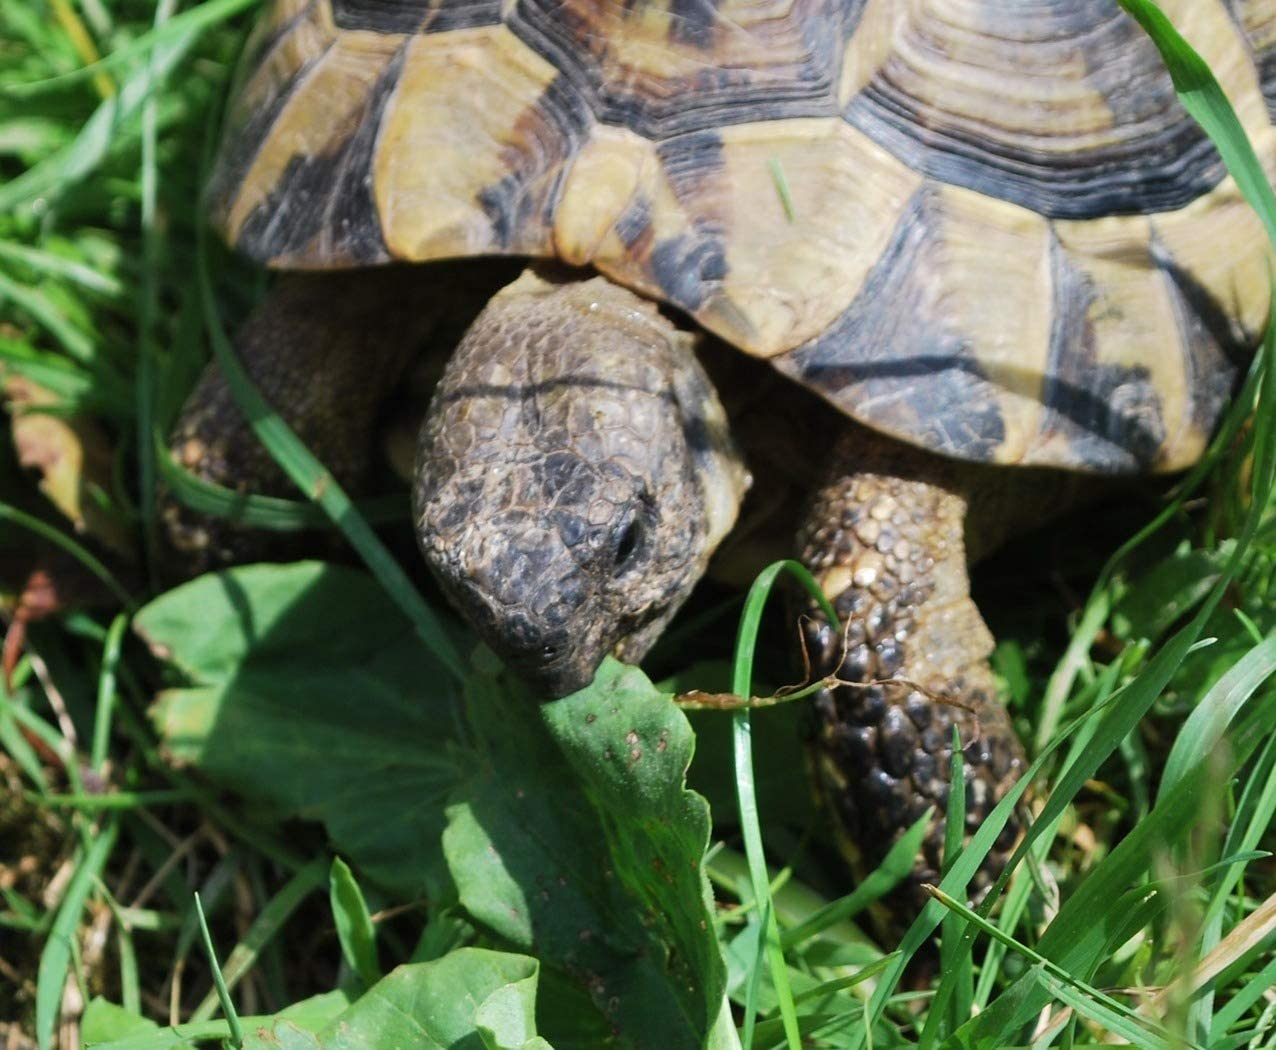 Russian Tortoise Forage Mix Seeds Grow Tort & Herbivore Fodder Plot bin281 (4,750 Seeds, or 1/4 oz)